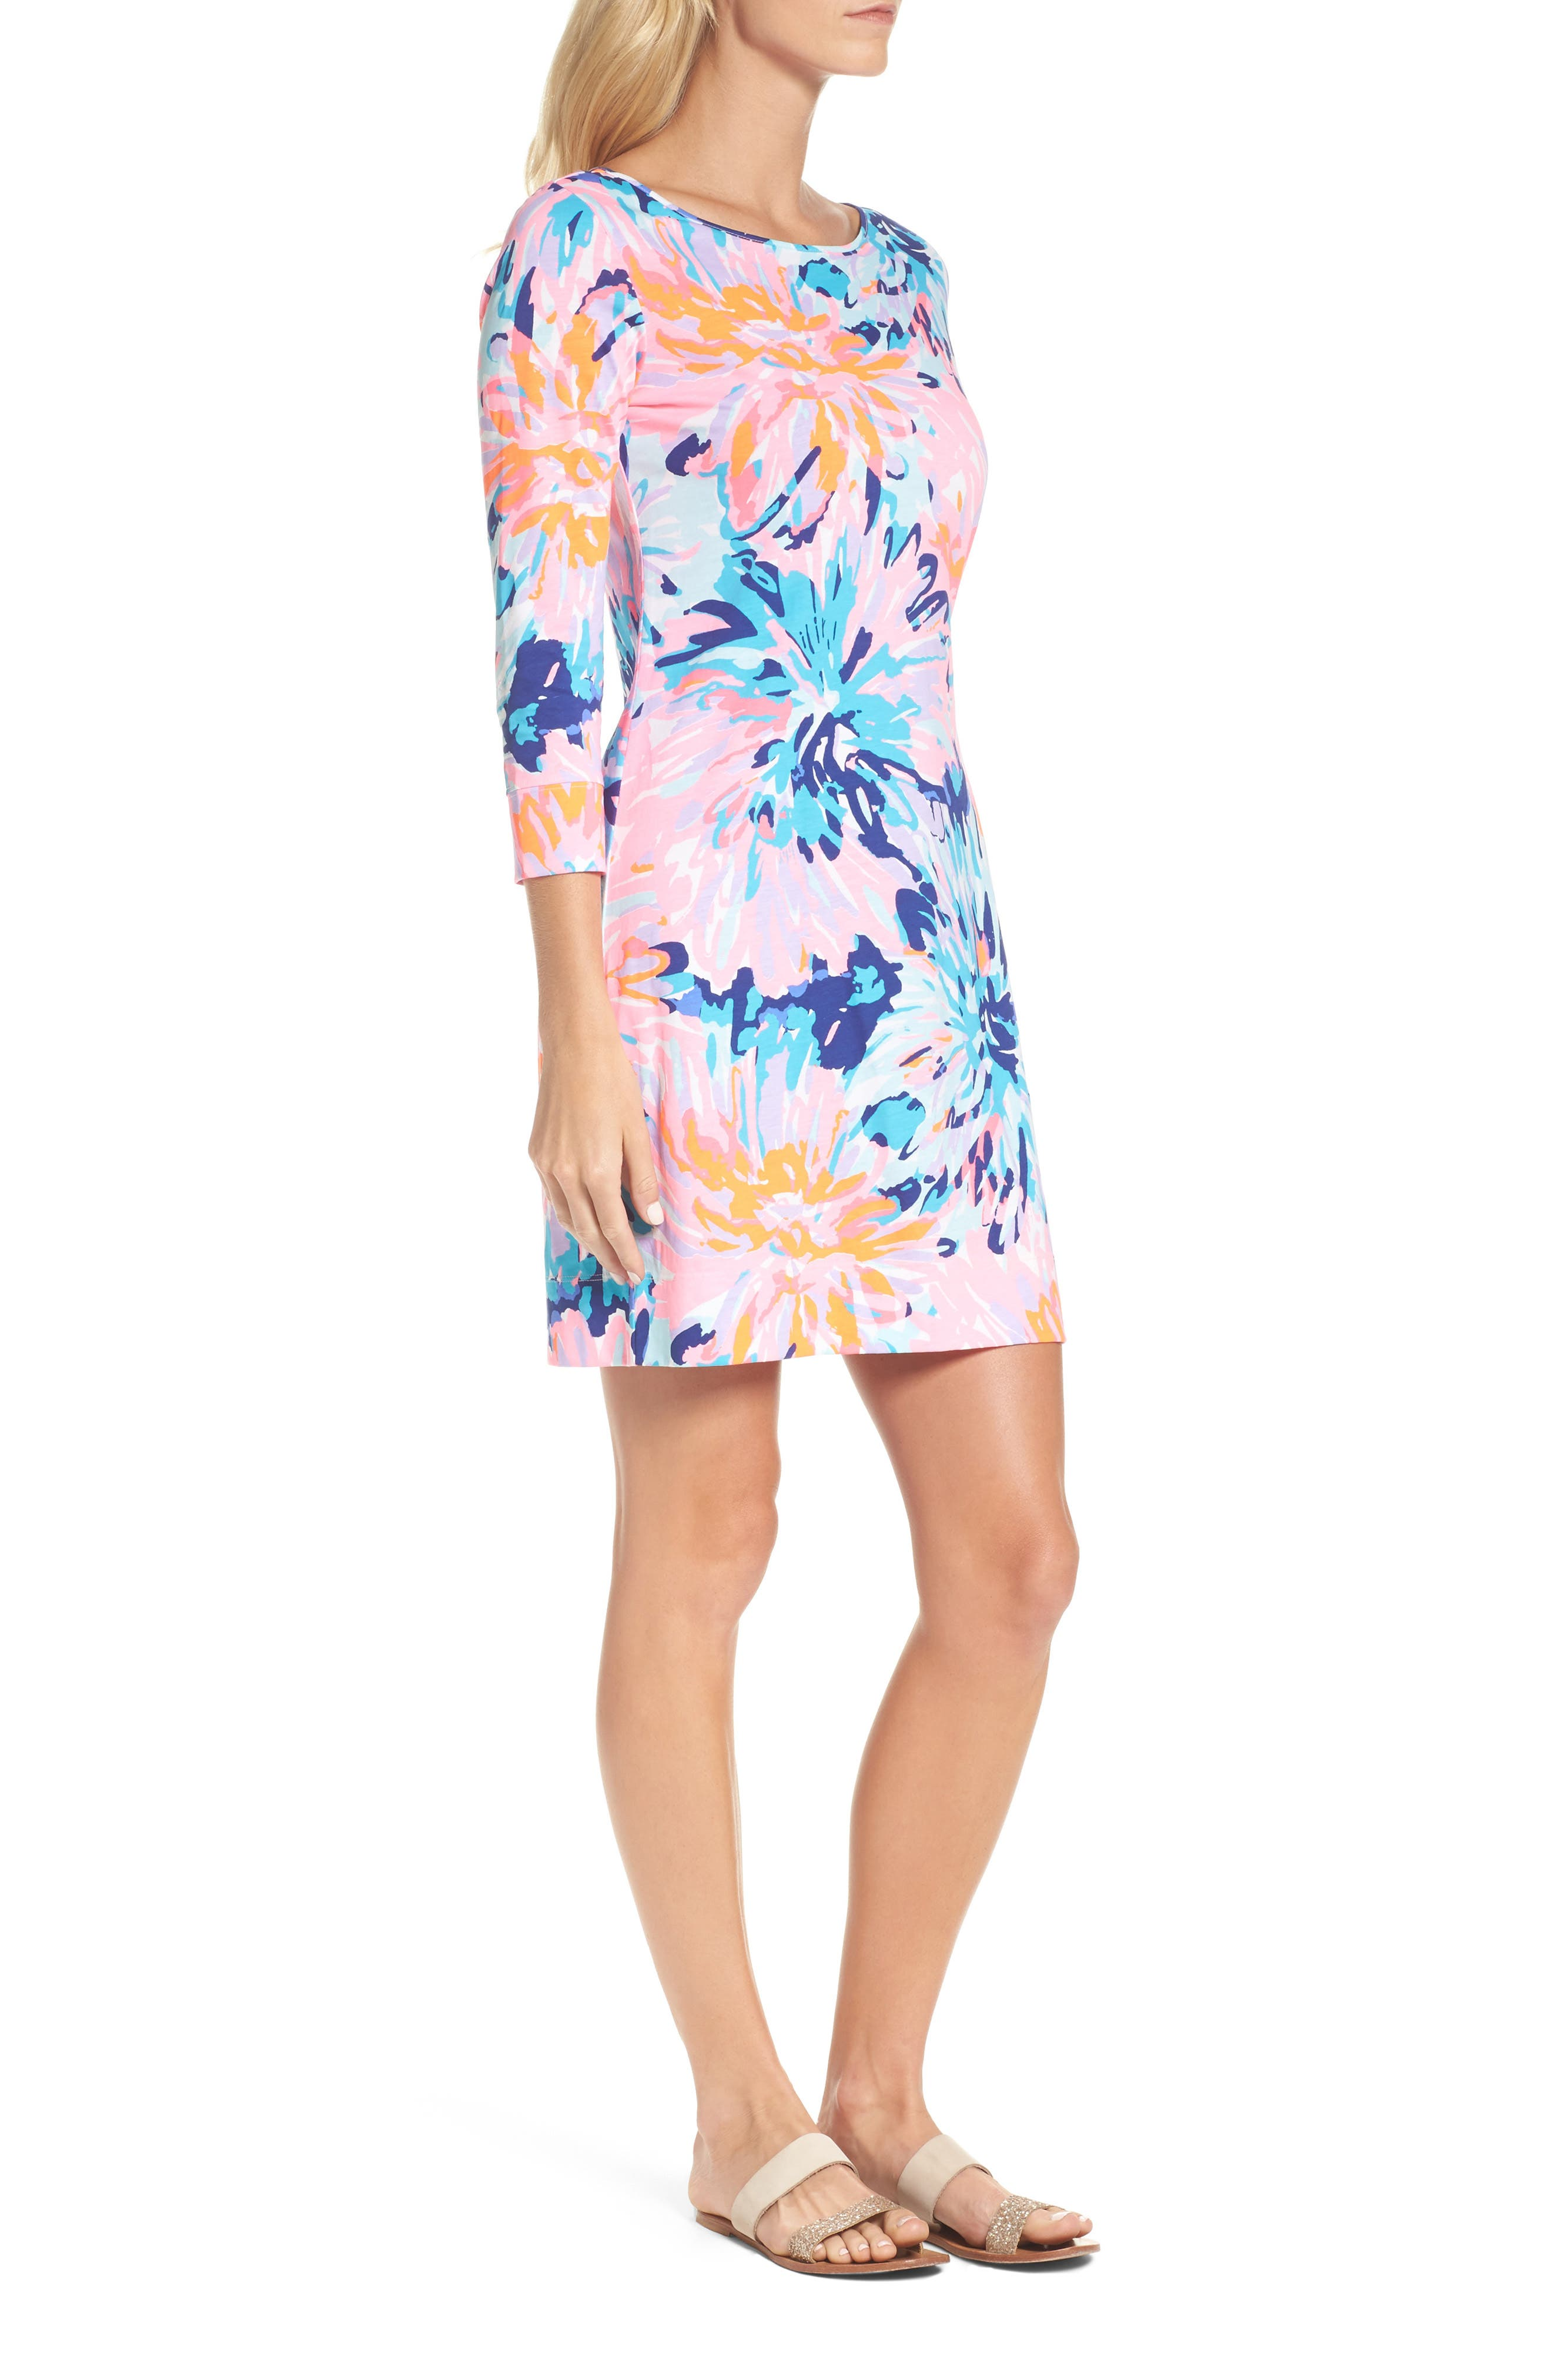 Marlowe T-Shirt Dress,                             Alternate thumbnail 3, color,                             Multi Off Tropic